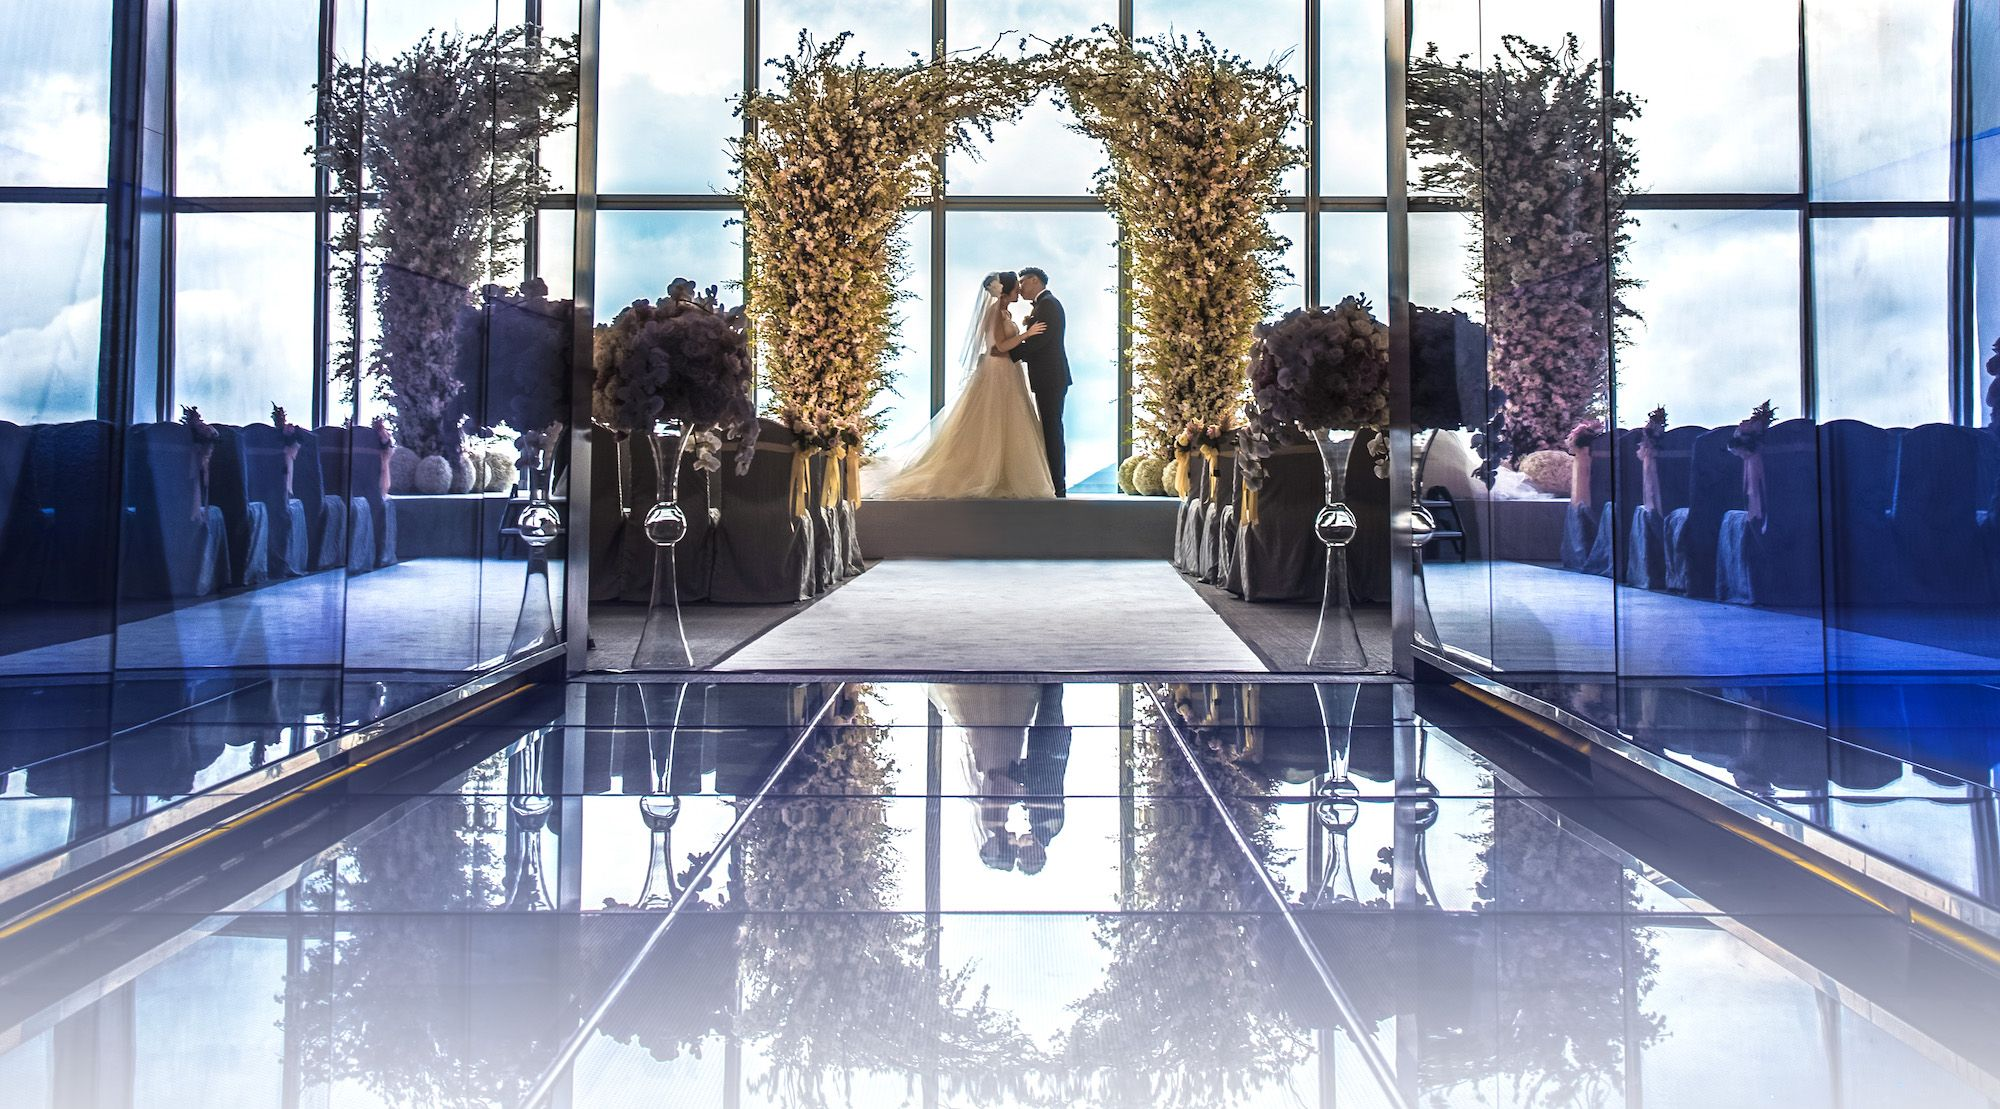 Sky-High Weddings: Tie The Knot At sky100